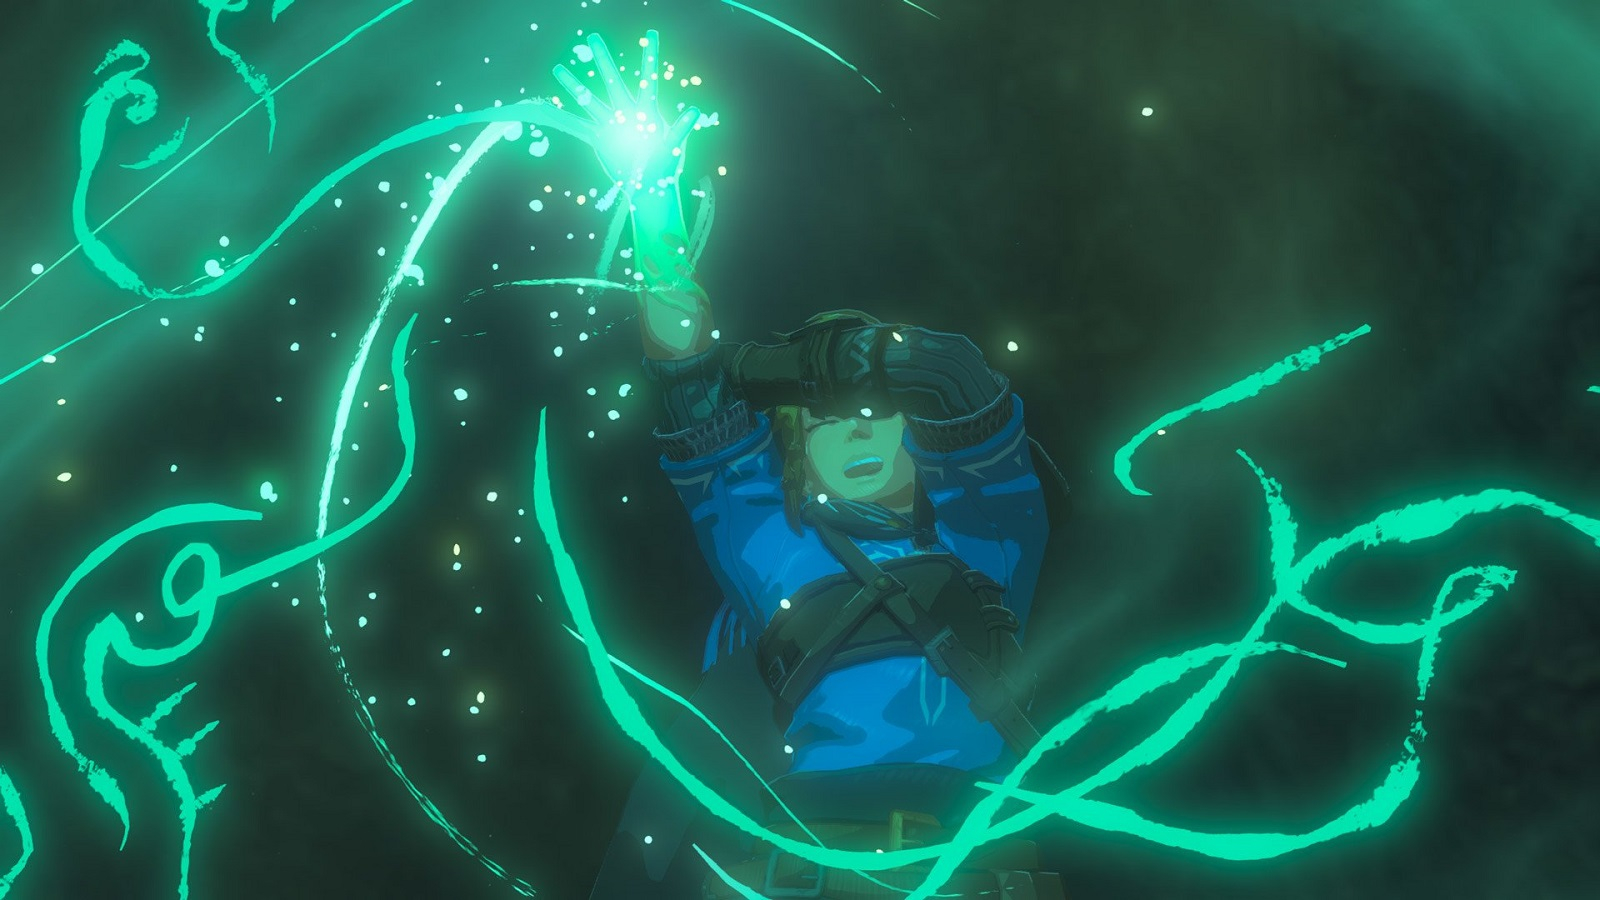 Сиквел Breath of the Wild уже начали переводить  релиз может быть не за горами